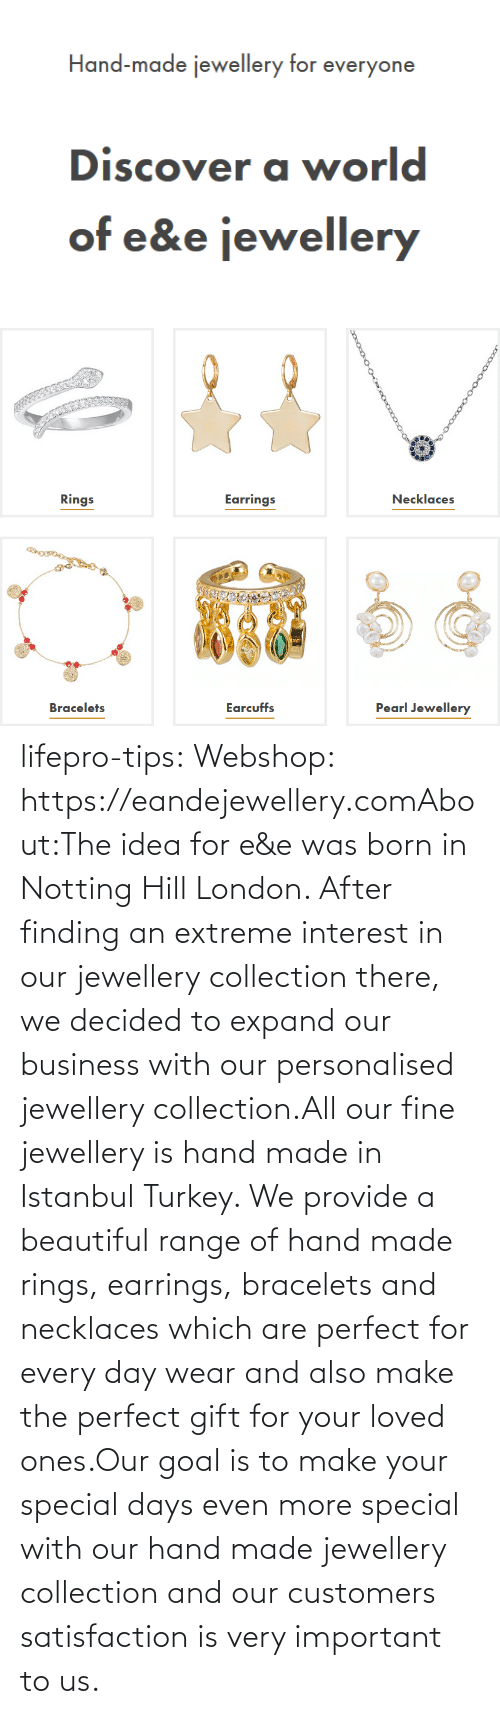 rings: lifepro-tips: Webshop: https://eandejewellery.comAbout:The idea for e&e was born in Notting Hill London. After  finding an extreme interest in our jewellery collection there, we  decided to expand our business with our personalised jewellery  collection.All our fine jewellery is hand made in Istanbul Turkey. We  provide a beautiful range of hand made rings, earrings, bracelets and  necklaces which are perfect for every day wear and also make the perfect  gift for your loved ones.Our goal is to make your special days even more special with  our hand made jewellery collection and our customers satisfaction is  very important to us.